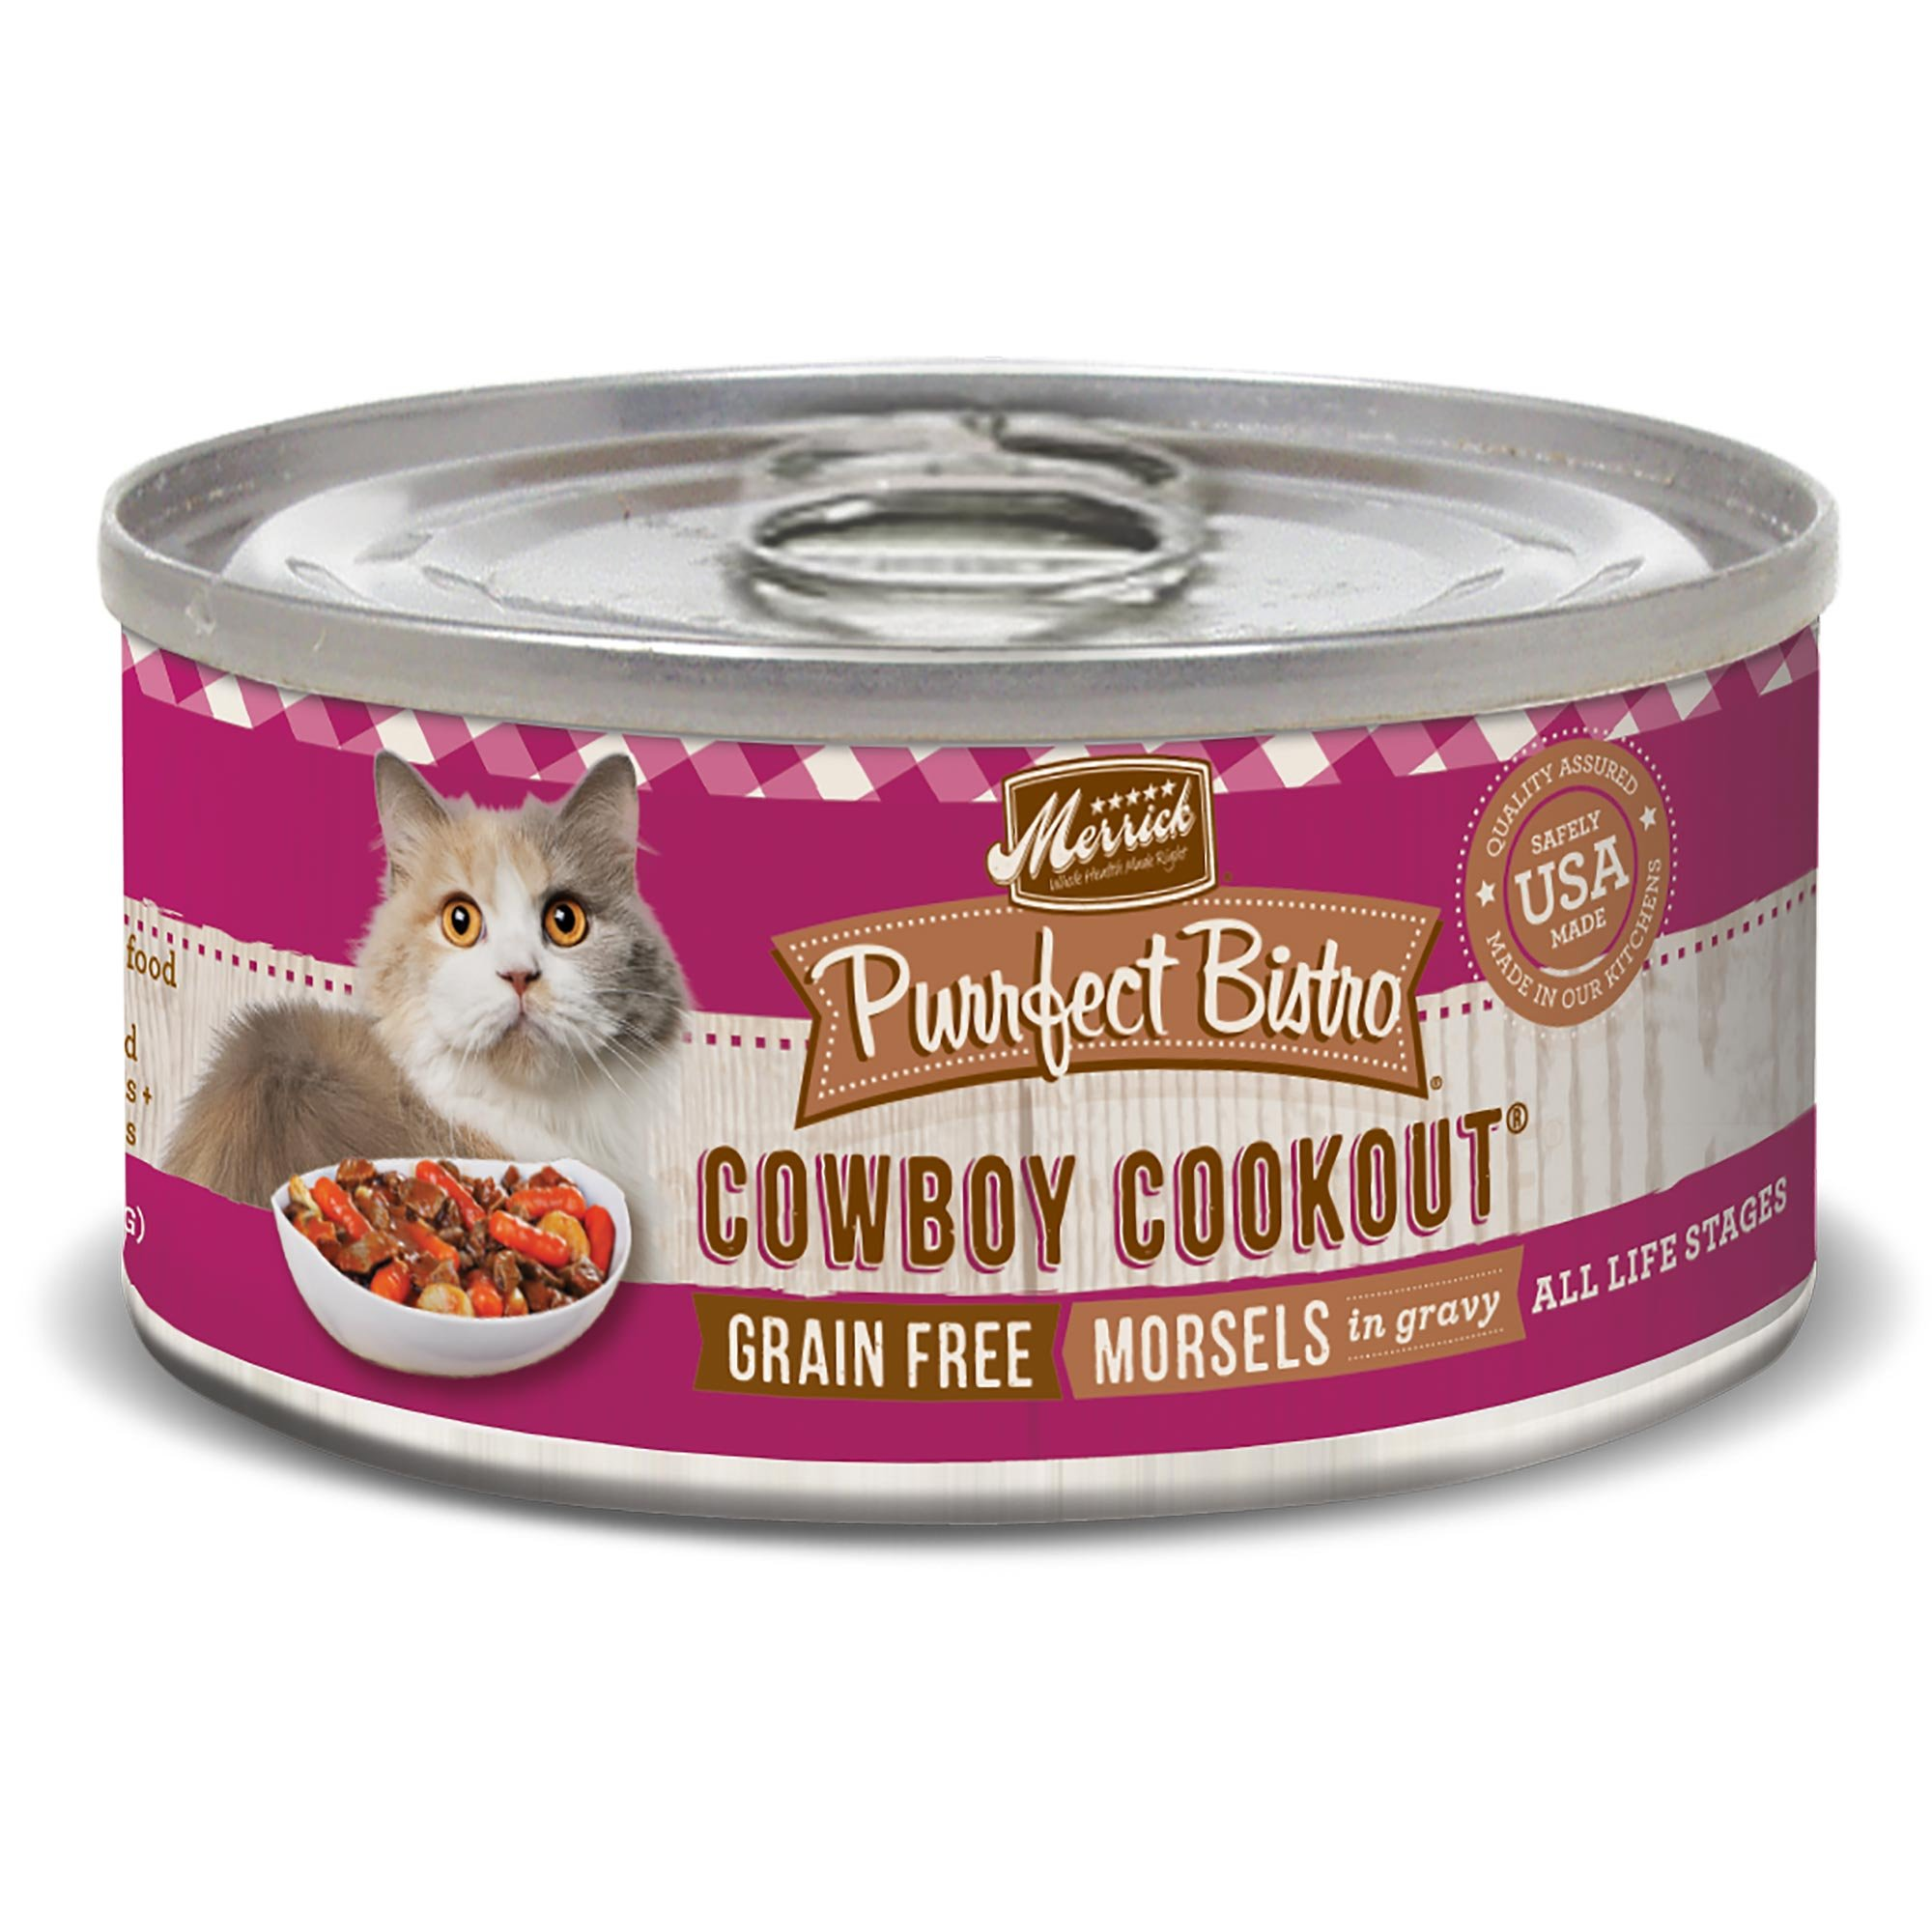 Merrick Purrfect Bistro Grain Free, 5.5 oz, Cowboy Cookout - Pack of 24  by Merrick